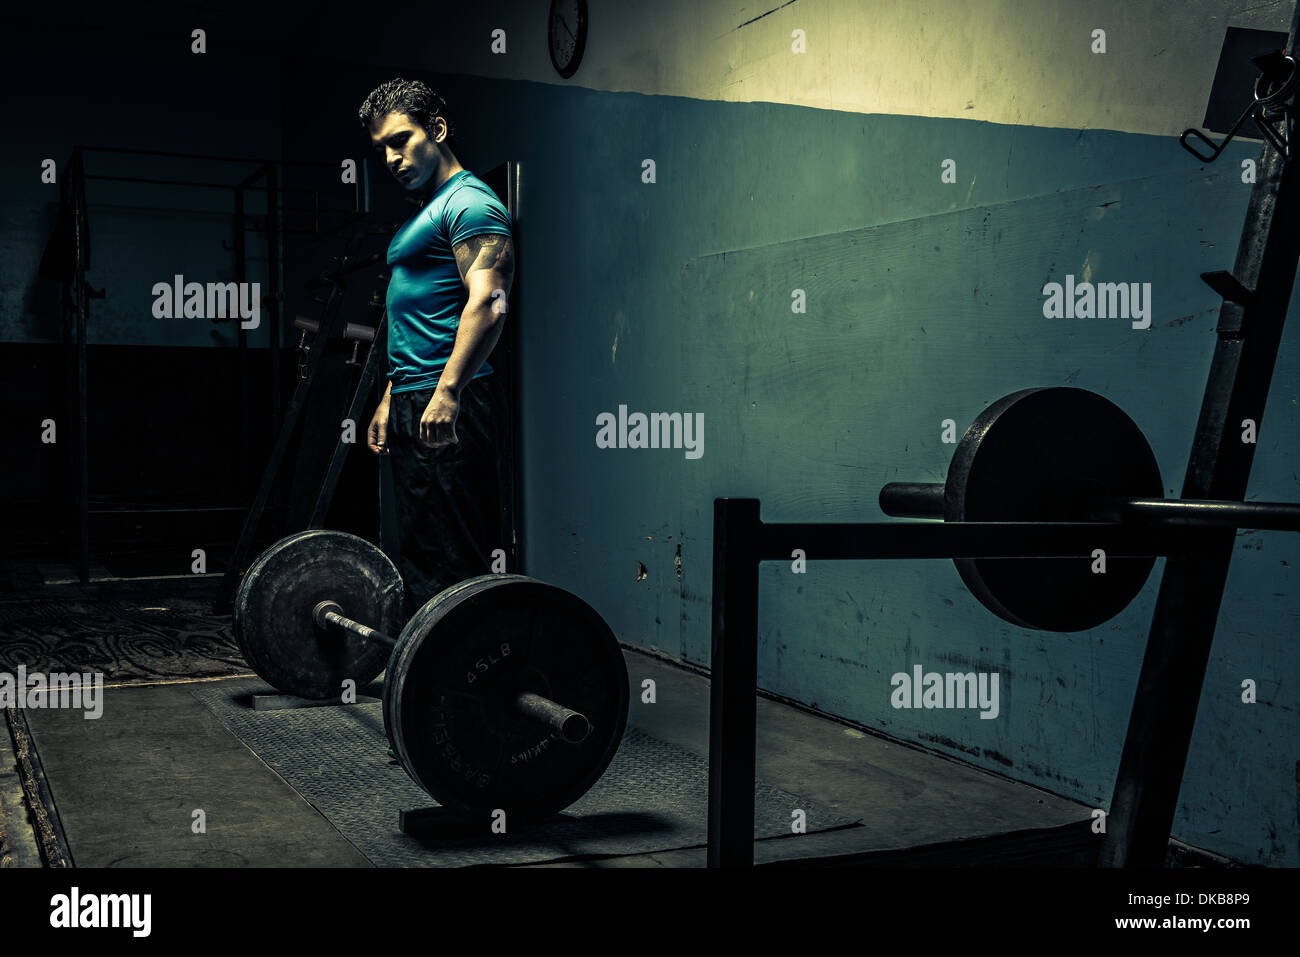 Weightlifter in dark gym, preparing to lift - Stock Image